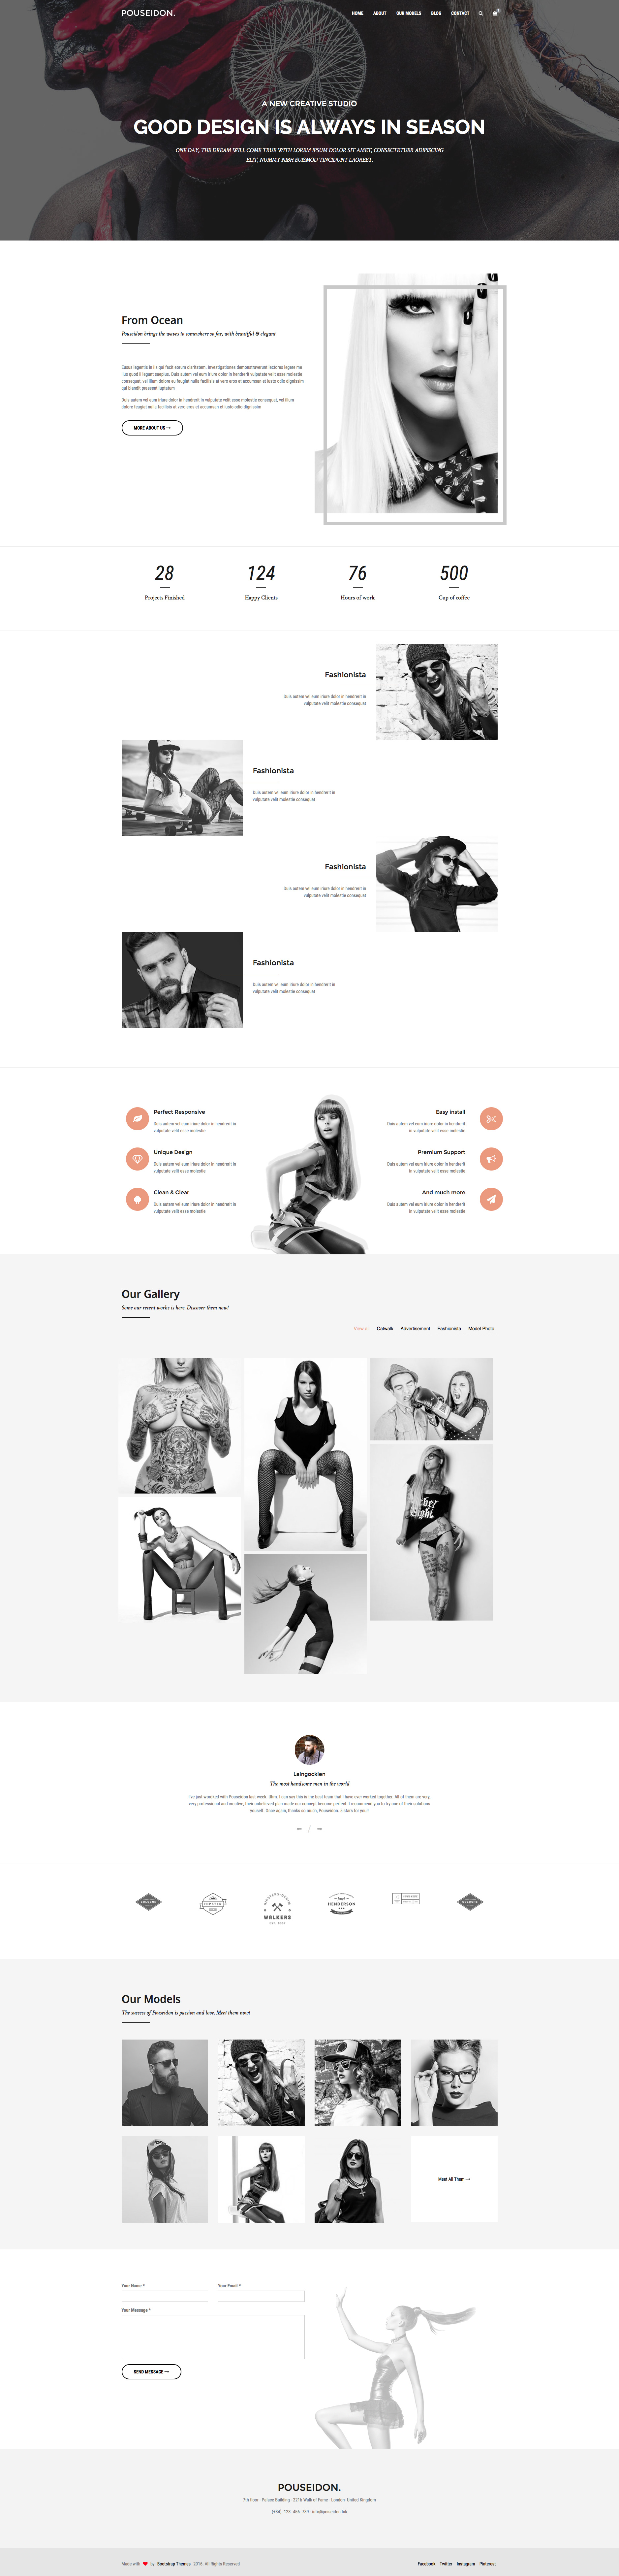 POUSEIDON is a free minimalist responsive HTML5 Bootstrap multi-purpose website template. It features Valid HTML5 / CSS3, Fully responsive design, Touch-Friendly images, Masonry grid, Jquery and CSS3 Animations and many more. POUSEIDON comes with multiple   pages. All of them fully responsive and a retina-ready.